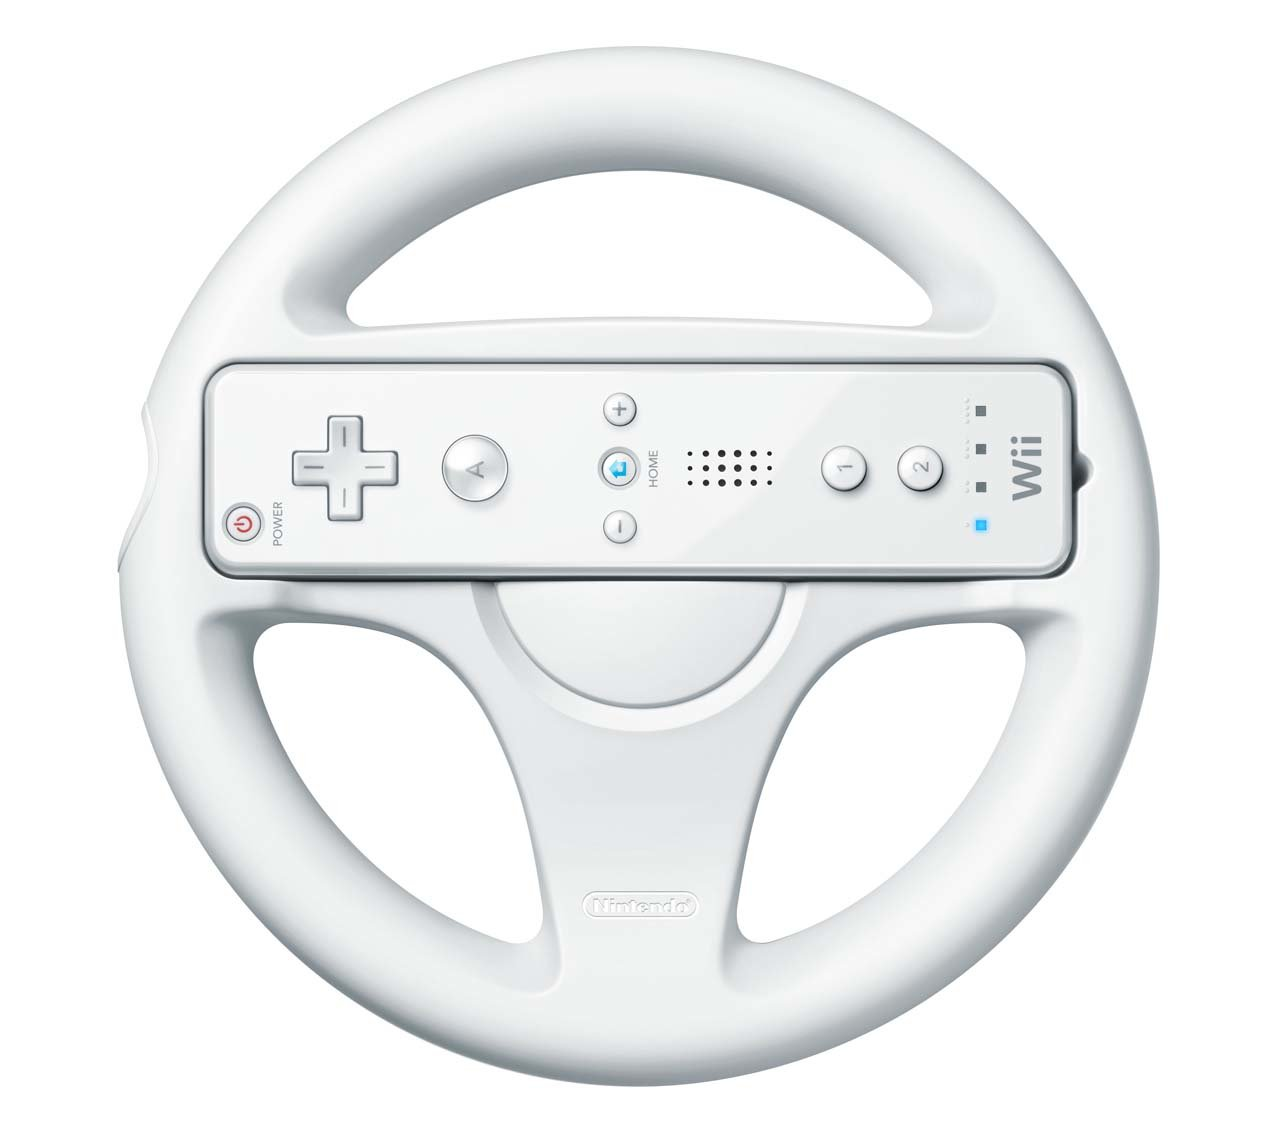 Amazon.com: Official Nintendo Wii Wheel Wii Remote Controller not included:  Artist Not Provided: Video Games